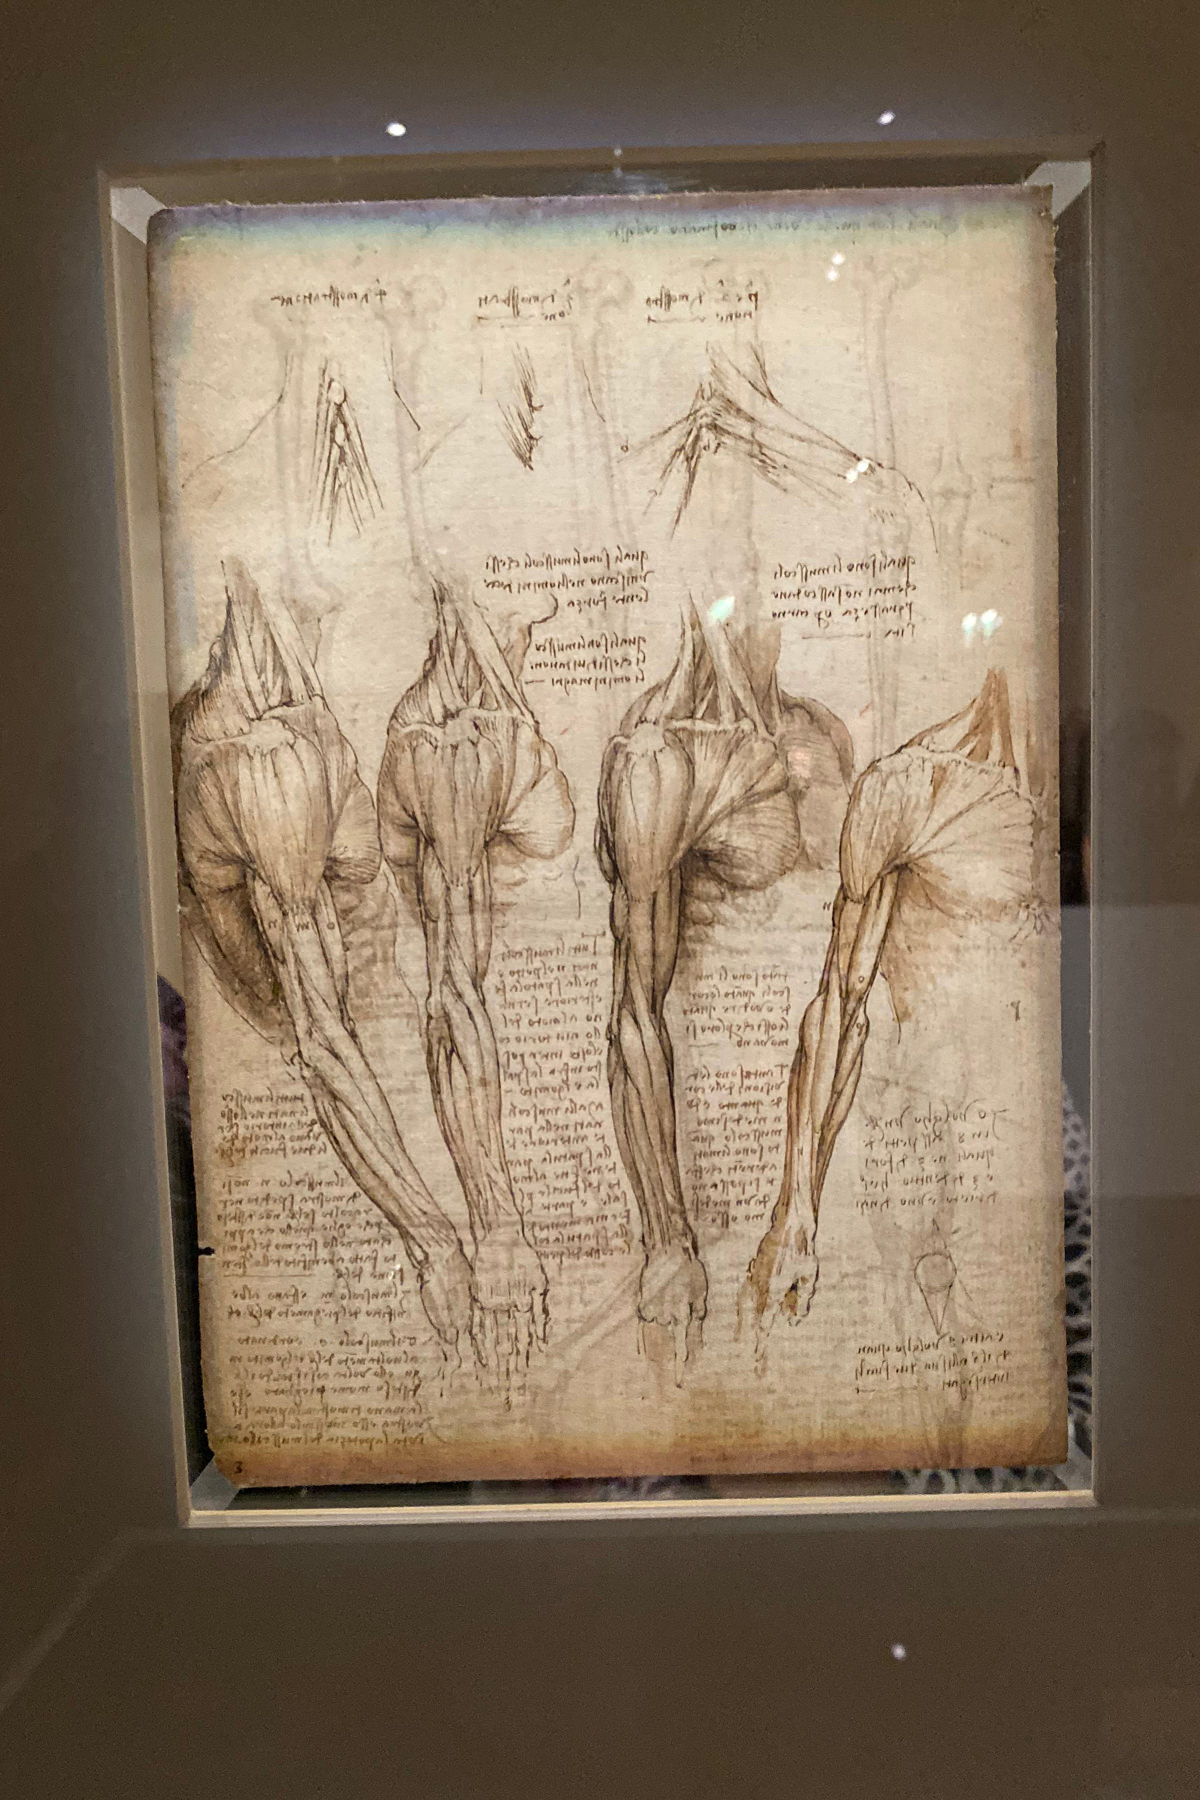 Leonardo da Vinci Exhibition in the Louvre Museum: Sketch for Muscles and Skeletons